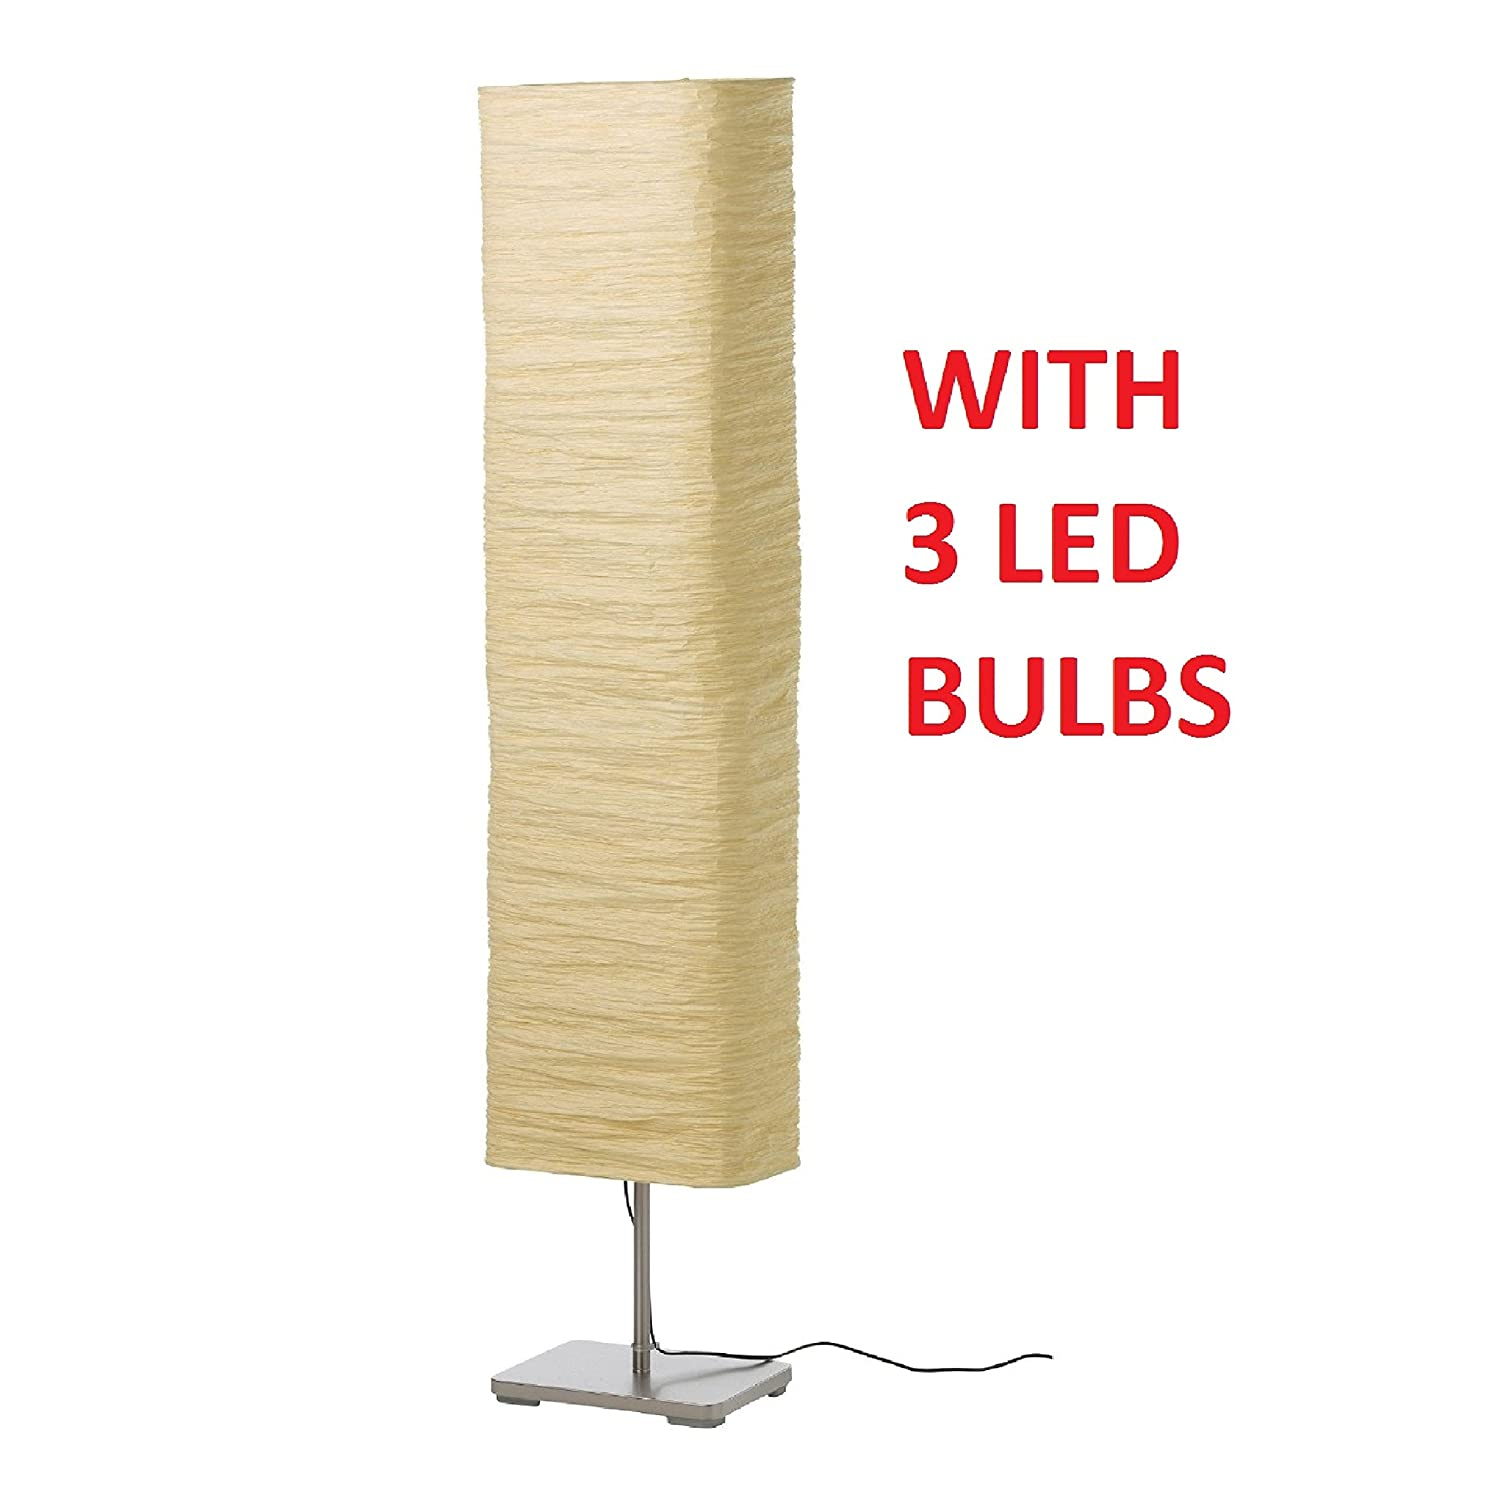 ikea floor lamps lighting. Ikea Floor Lamps Lighting E